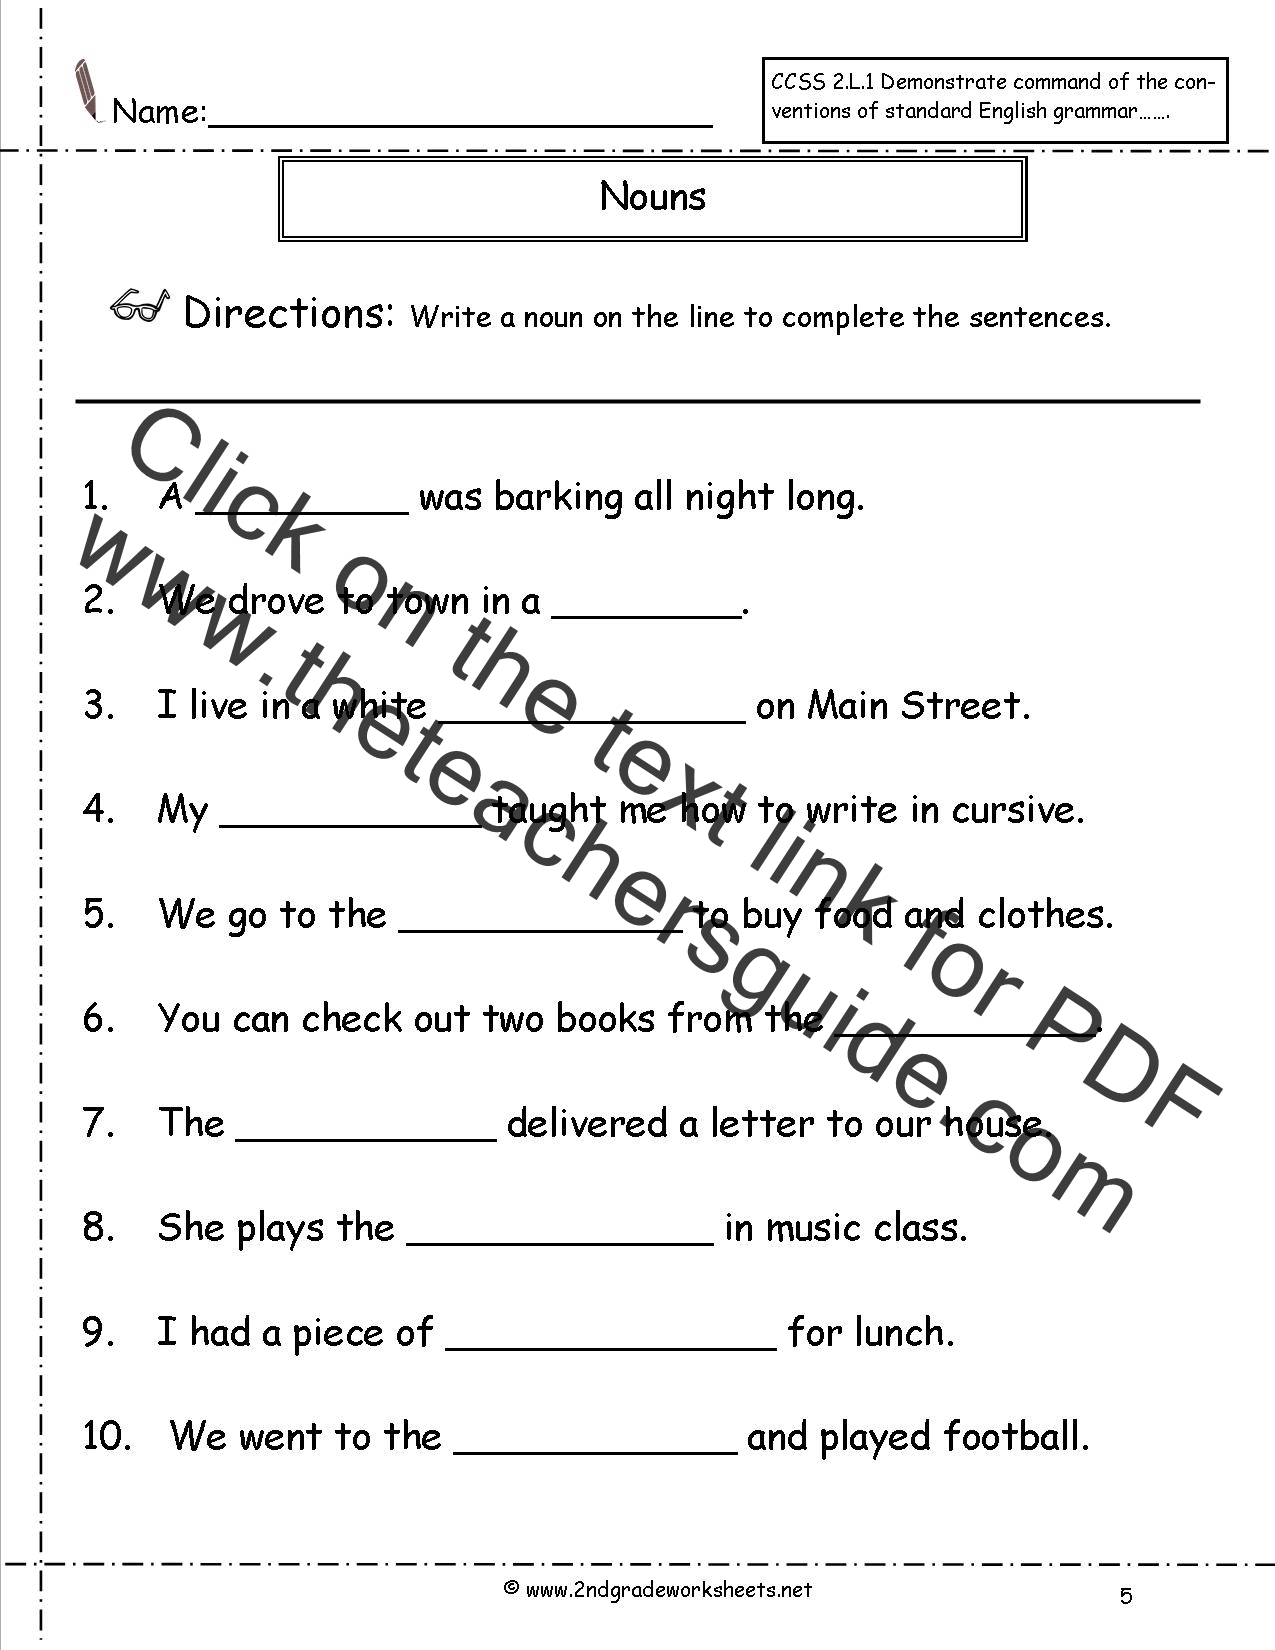 Worksheets Pronoun Worksheets 2nd Grade nouns worksheets and printouts worksheet